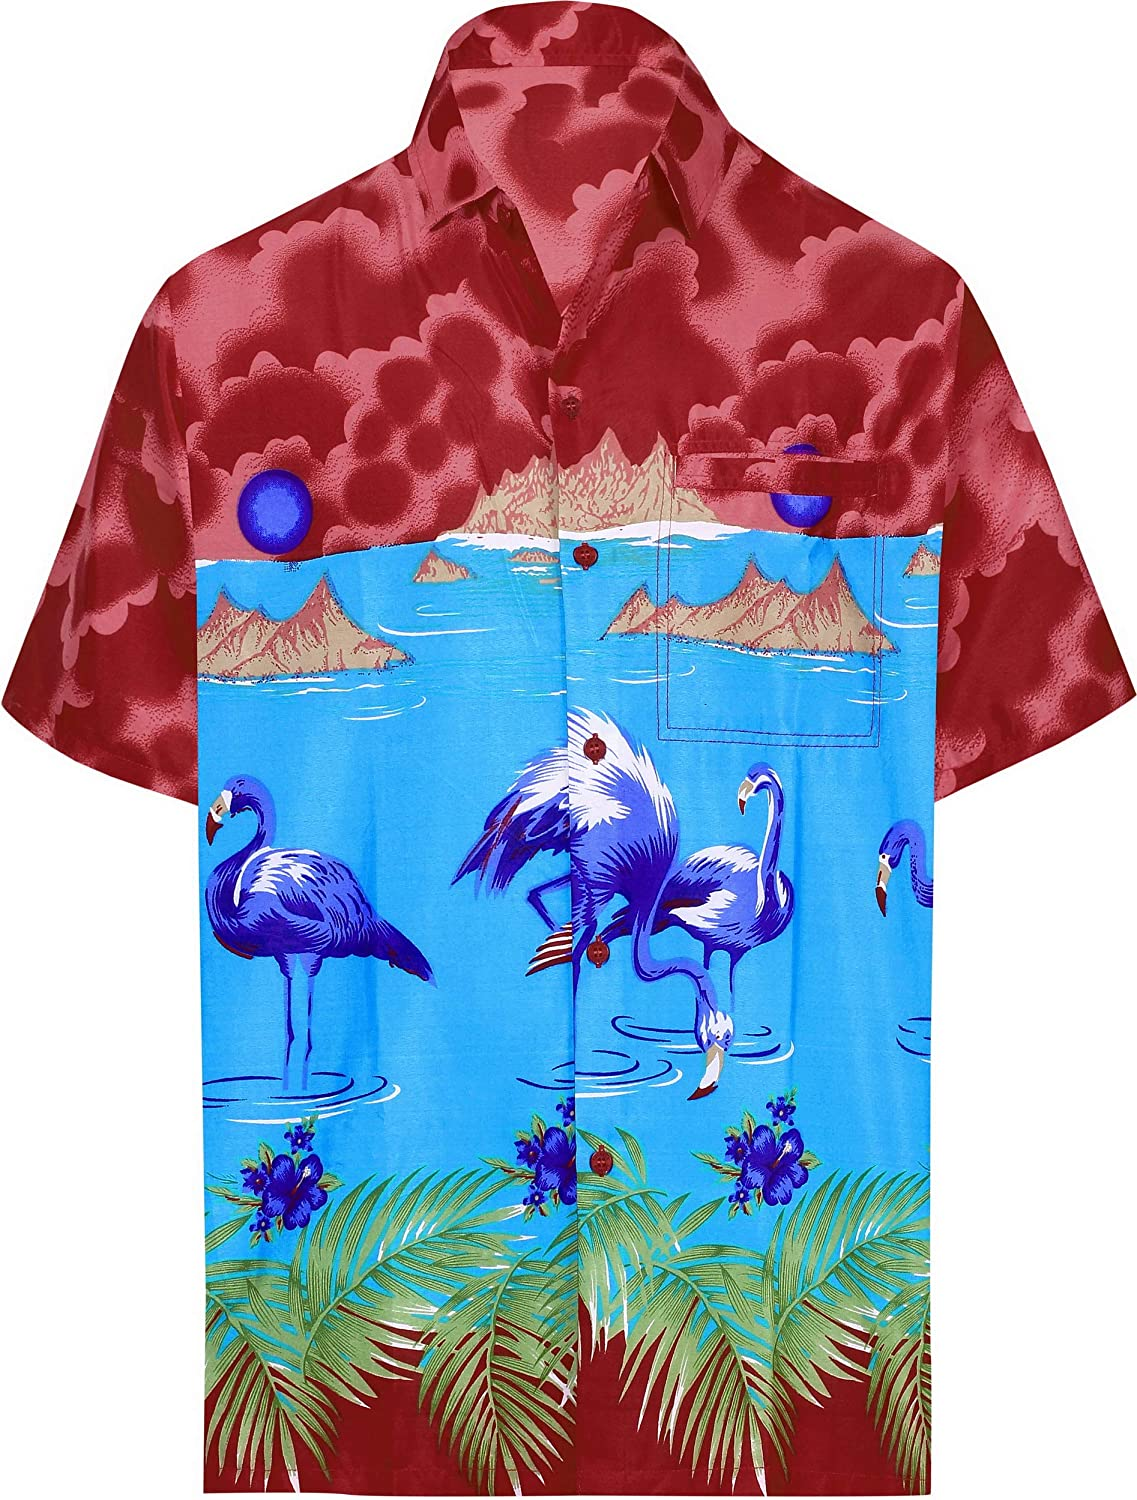 La Leela Men S Designer Fashion Short Sleeve Hawaiian Shirt At Amazon Men S Clothing Store